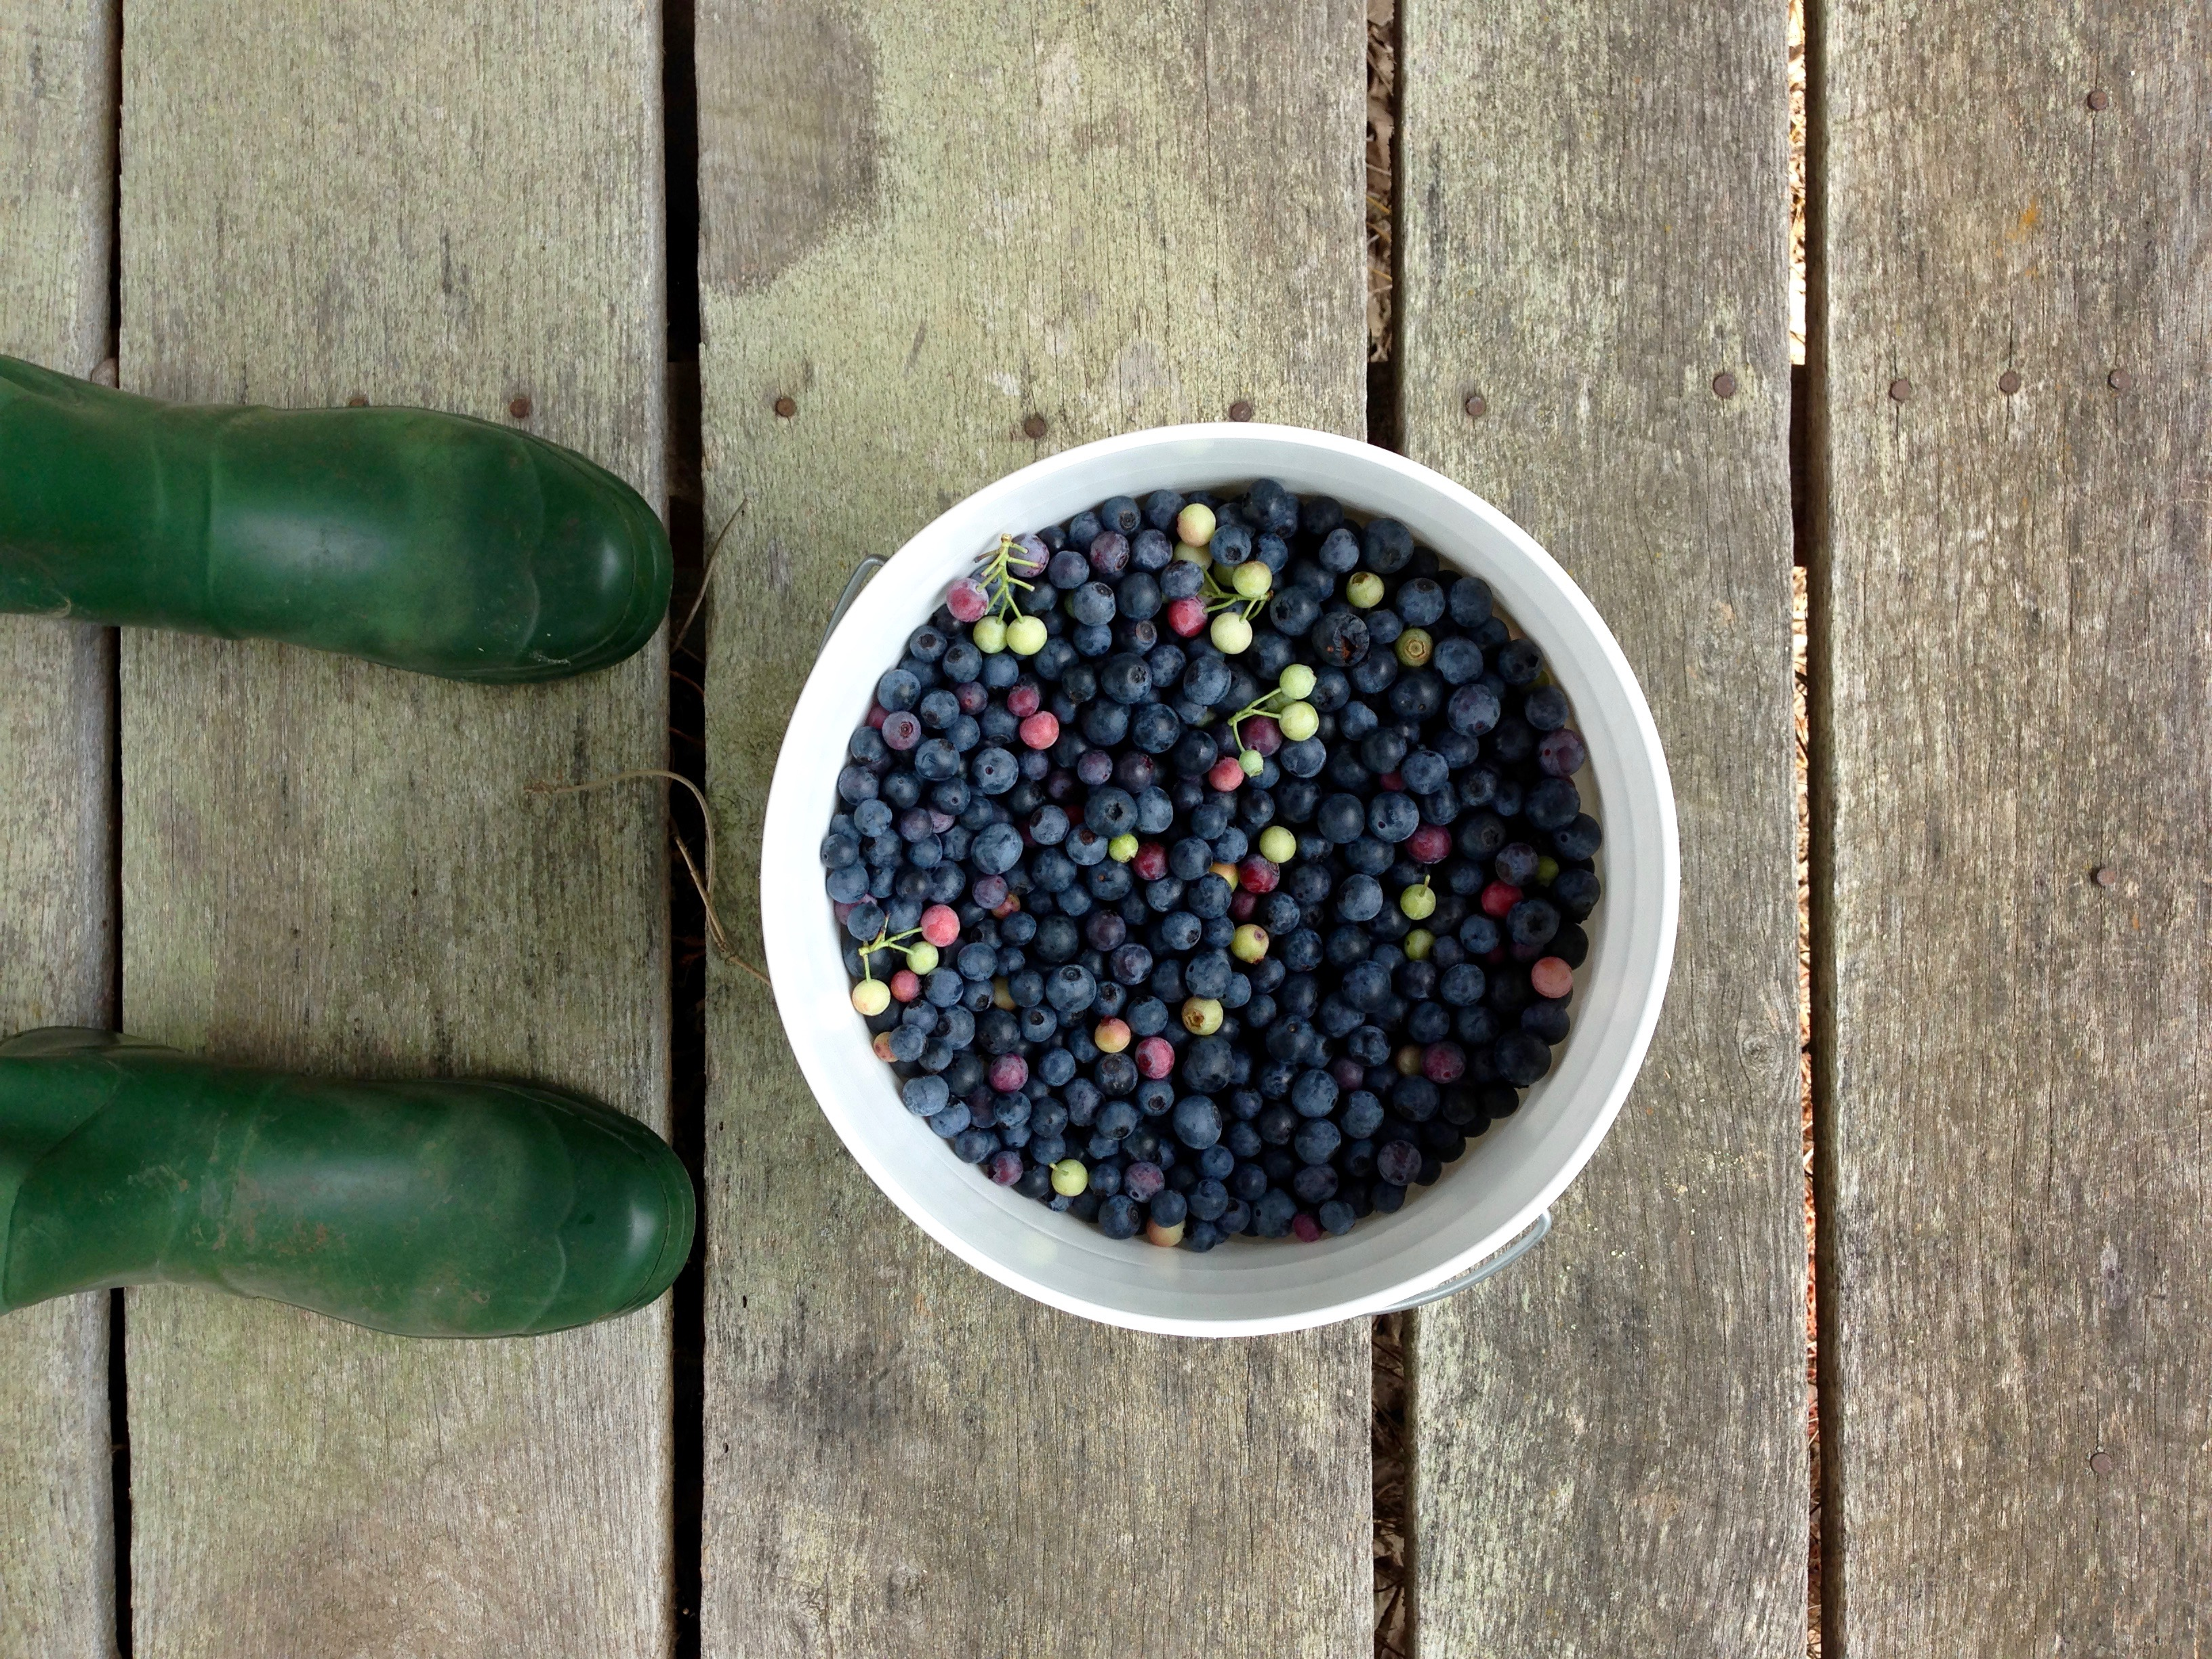 Local blueberries are abundant in Sante Fe, TN and ready for